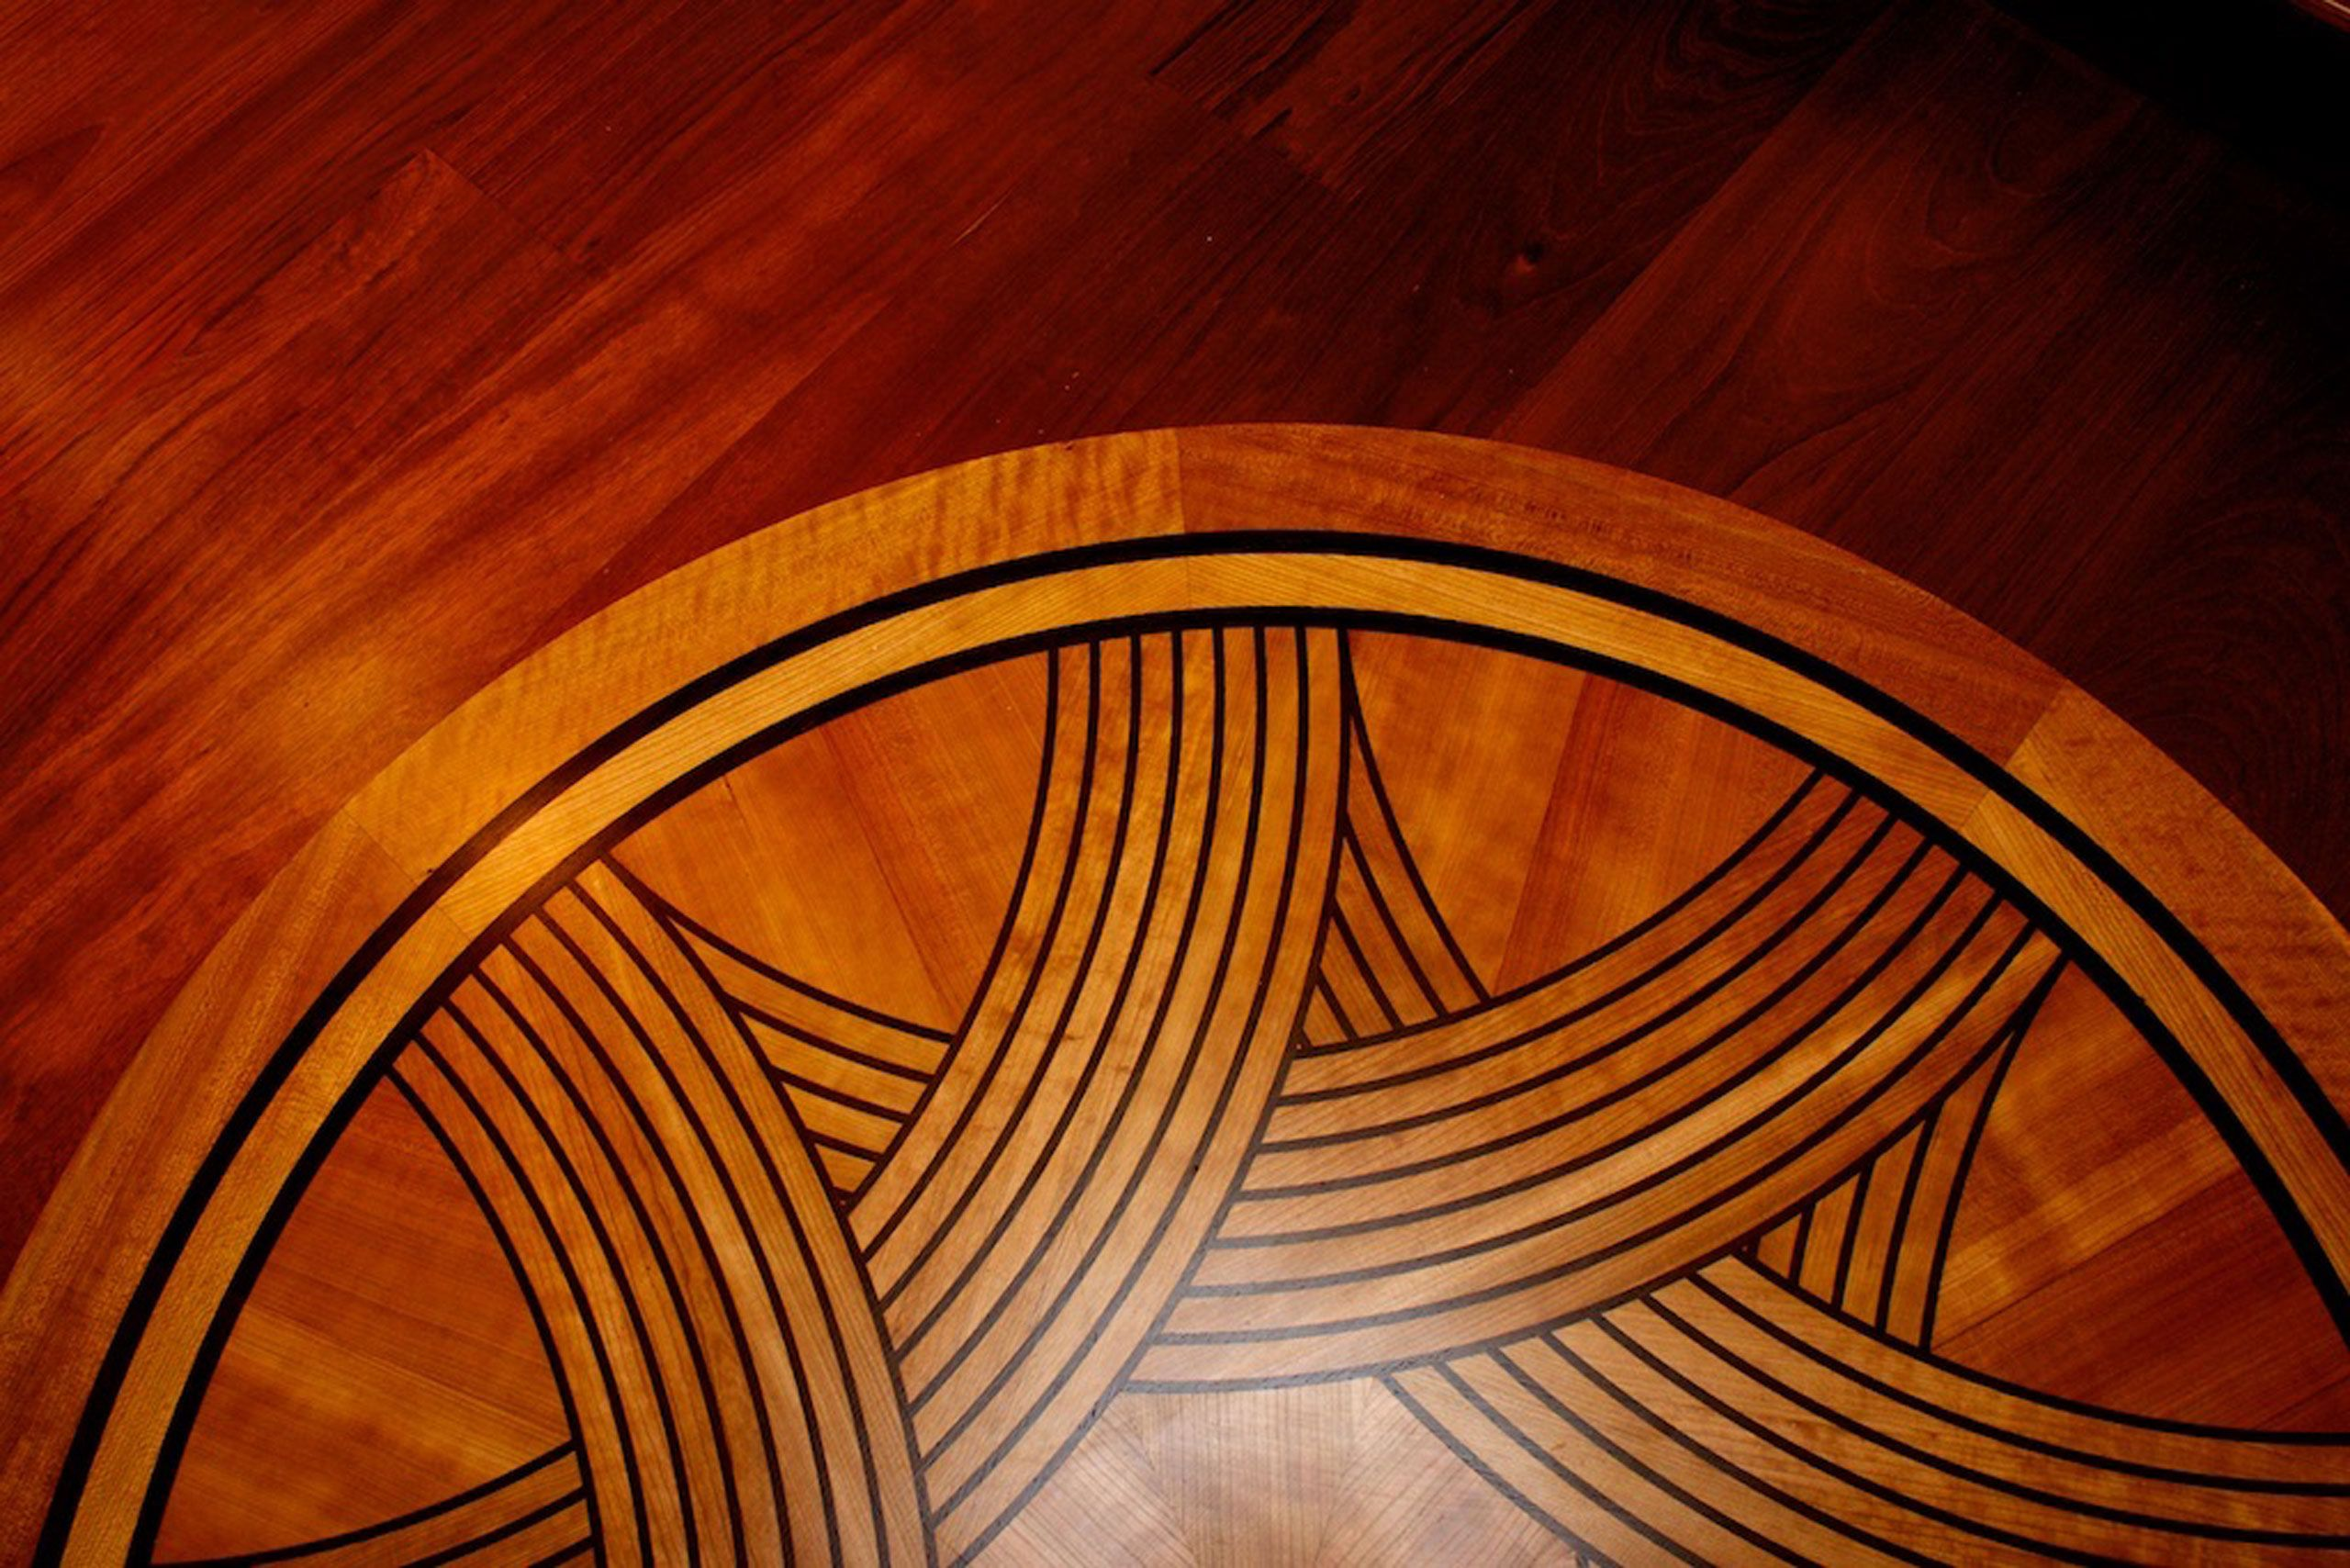 Medallion in Jatoba floor